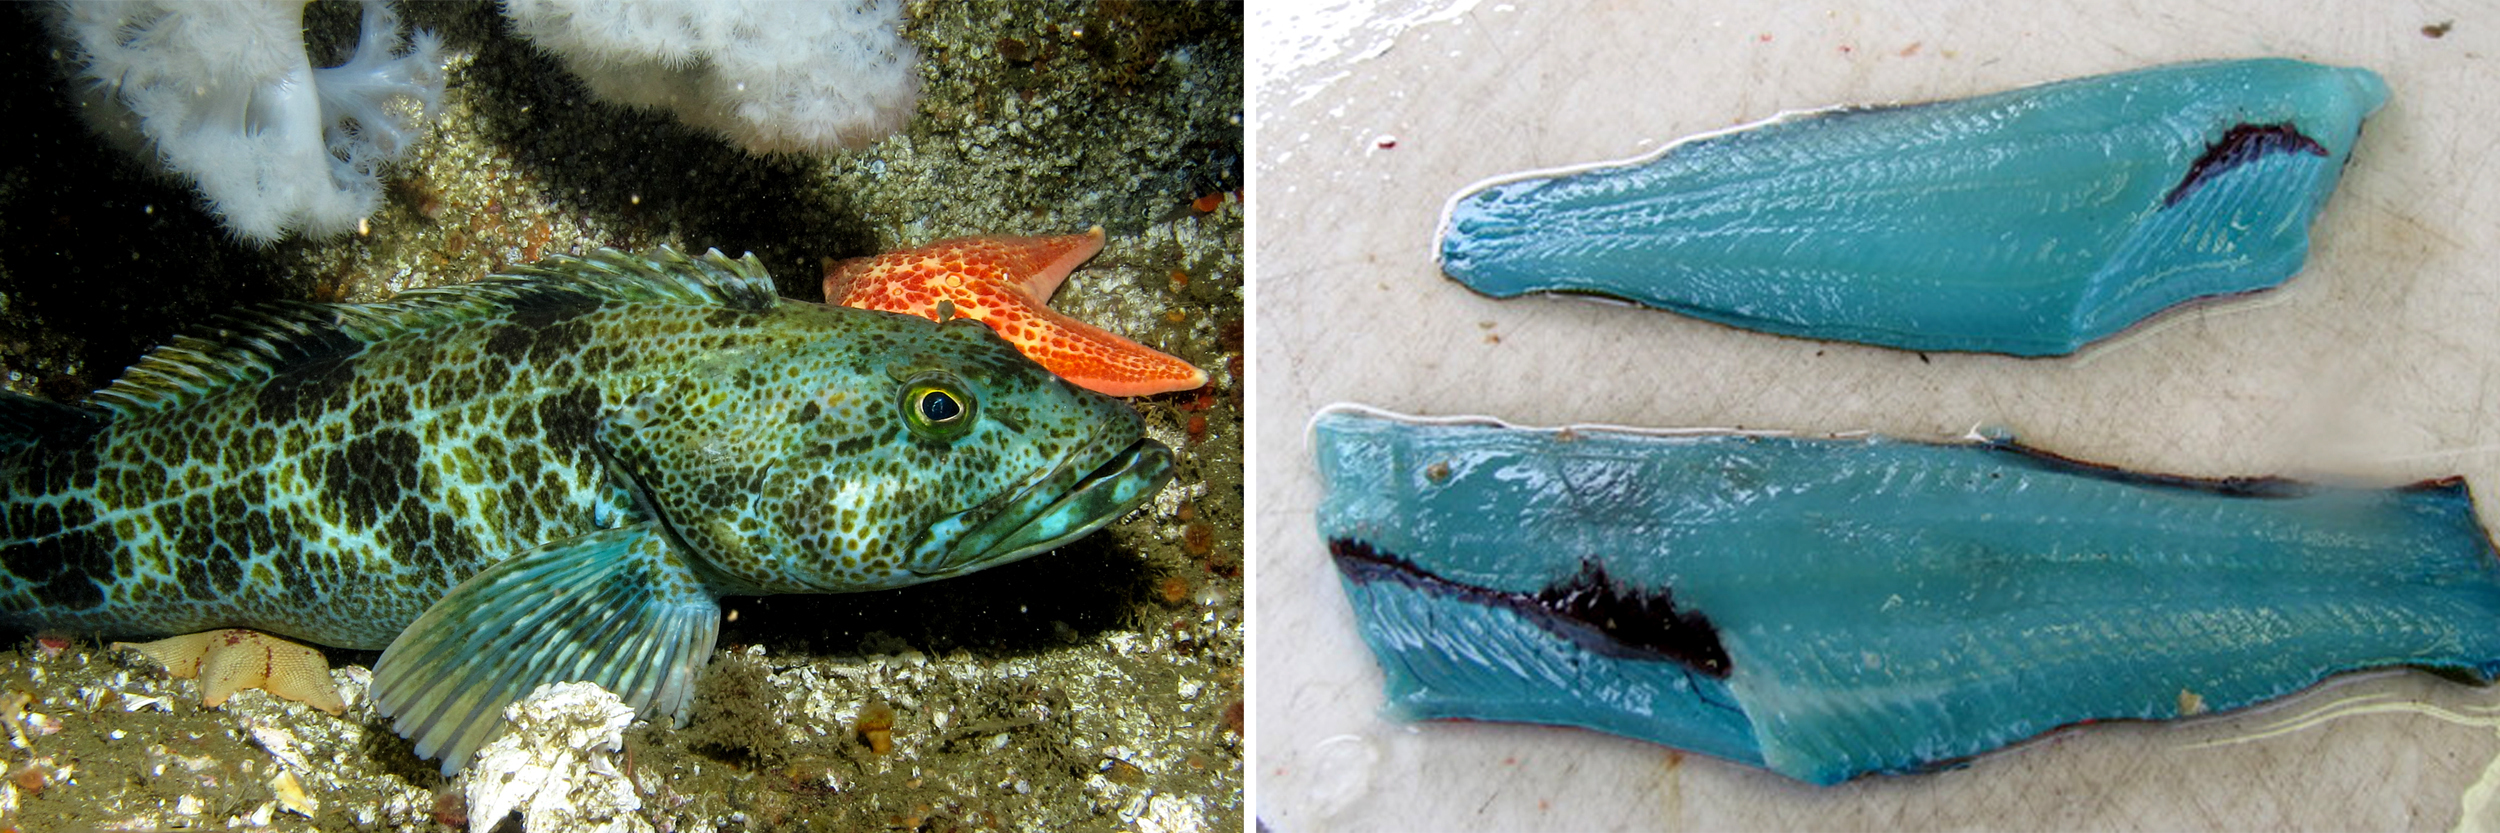 A lingcod, location unknown; blue lingcod fillets. Photos: Ed Bierman/Flickr